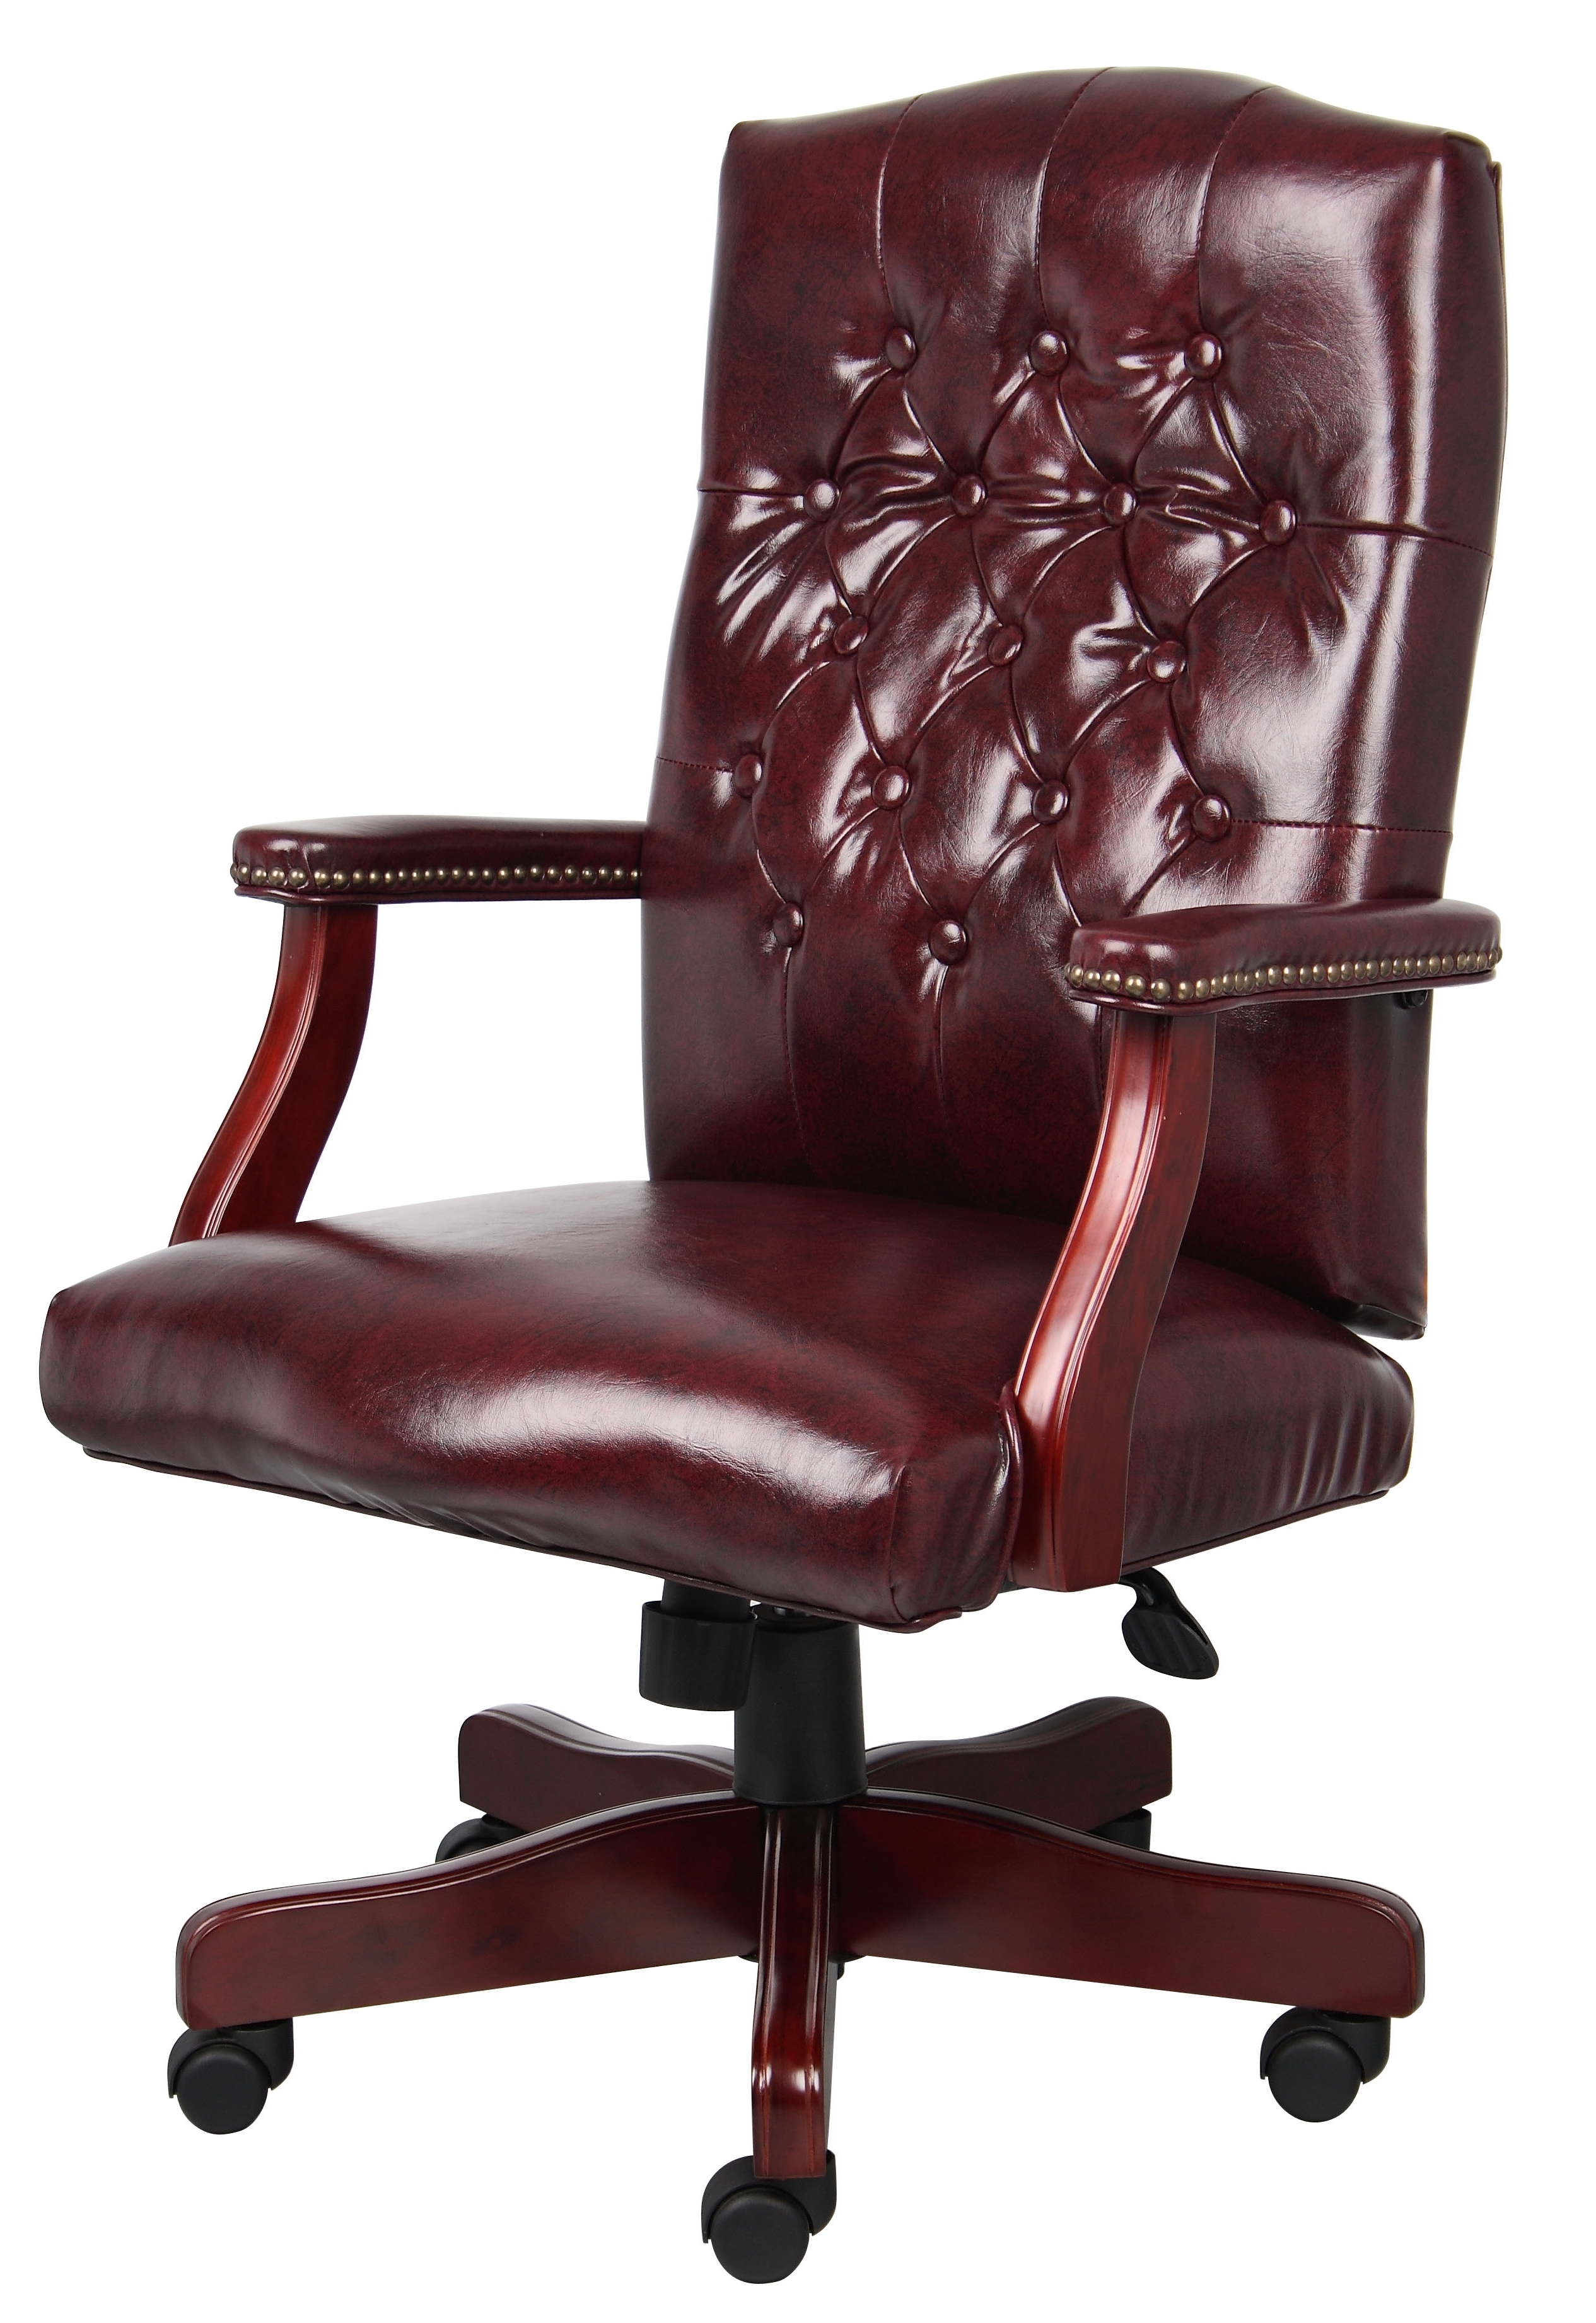 Traditional Executive Office Chairs Regarding Most Up To Date Traditional Mahogany Executive Chair (View 15 of 20)